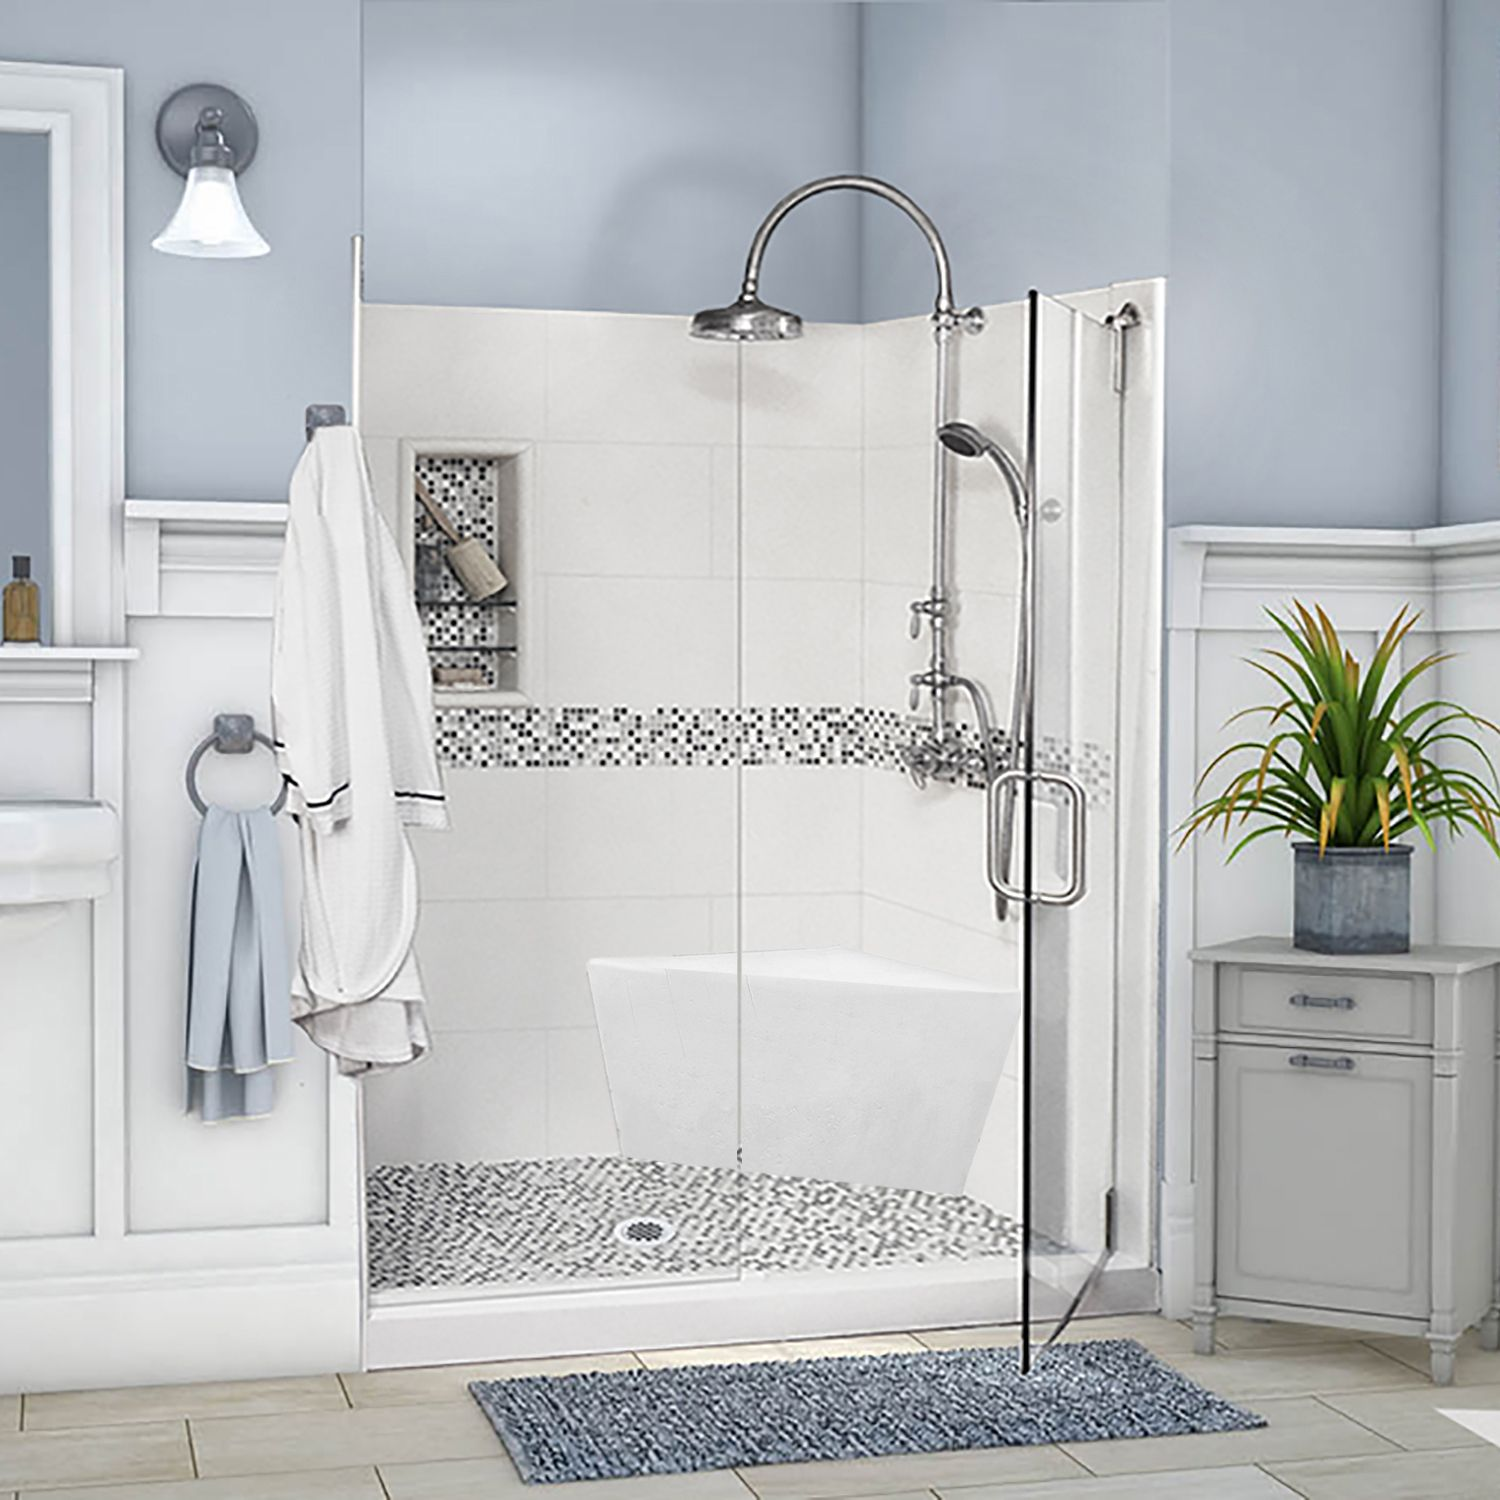 Pin On Shower Remodel Ideas